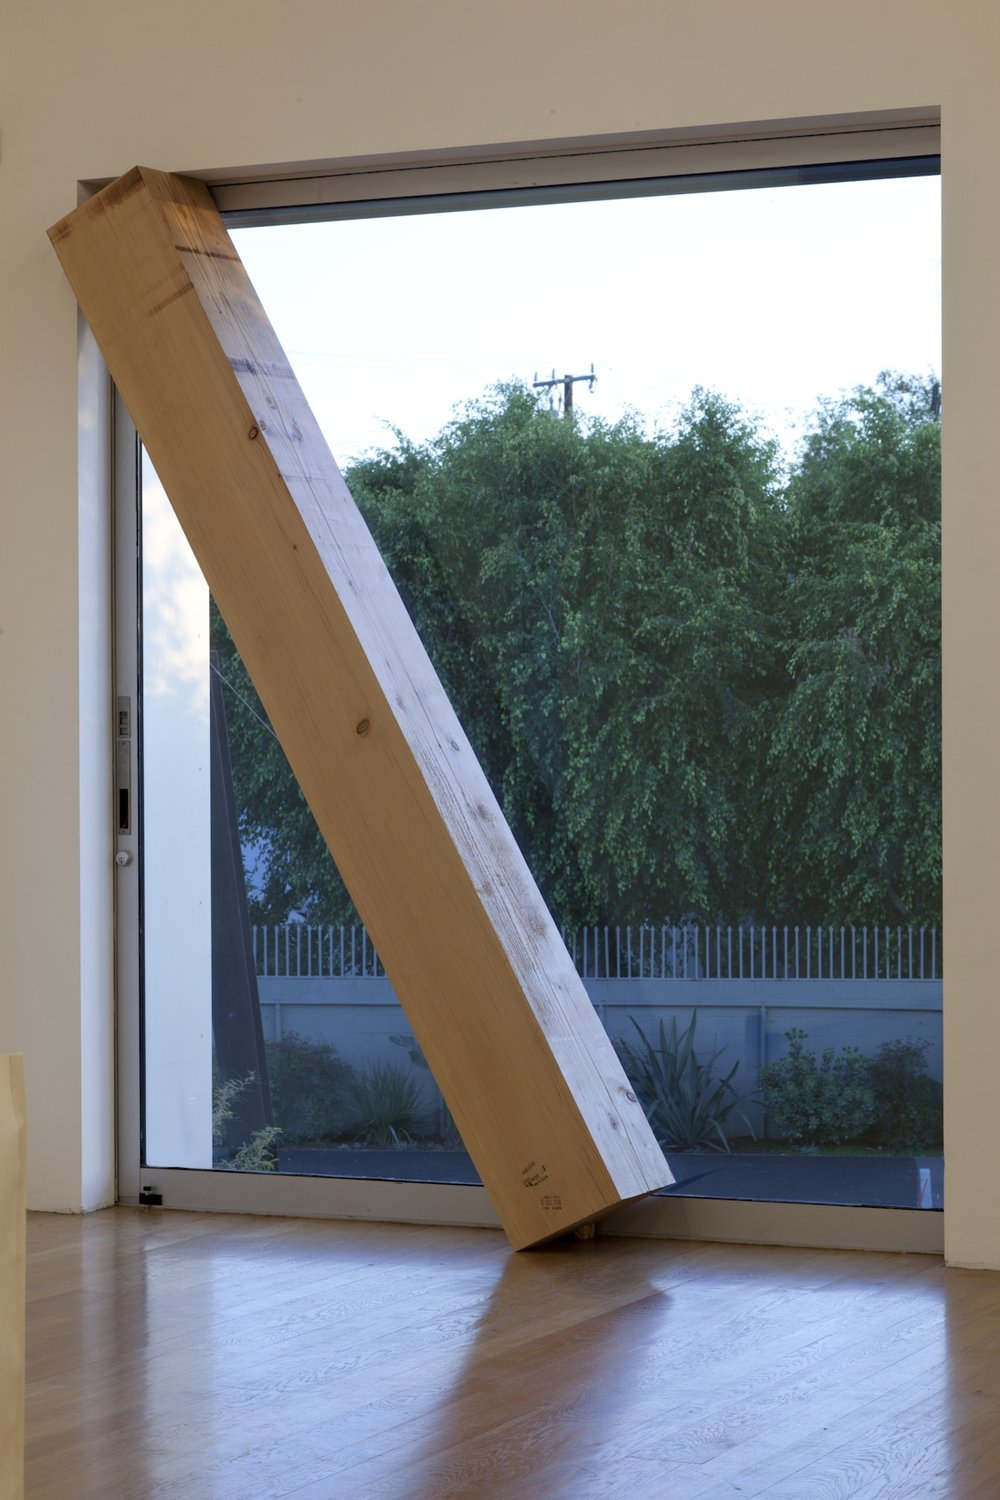 Infinite Situation I (window) , 1970/2012 無限状況 I (窓) ( M  ugen Jōkyō I [Mado])  Douglas fir, window, landscape Beam: 103 x 11 1/2 x 11 1/2 inches (261.6 x 29.2 x 29.2 centimeters) Installed dimensions variable Installation view,  Requiem for the Sun: The Art of Mono-ha  at Blum & Poe, Los Angeles, 2012 Courtesy Blum & Poe, Los Angeles / New York / Tokyo